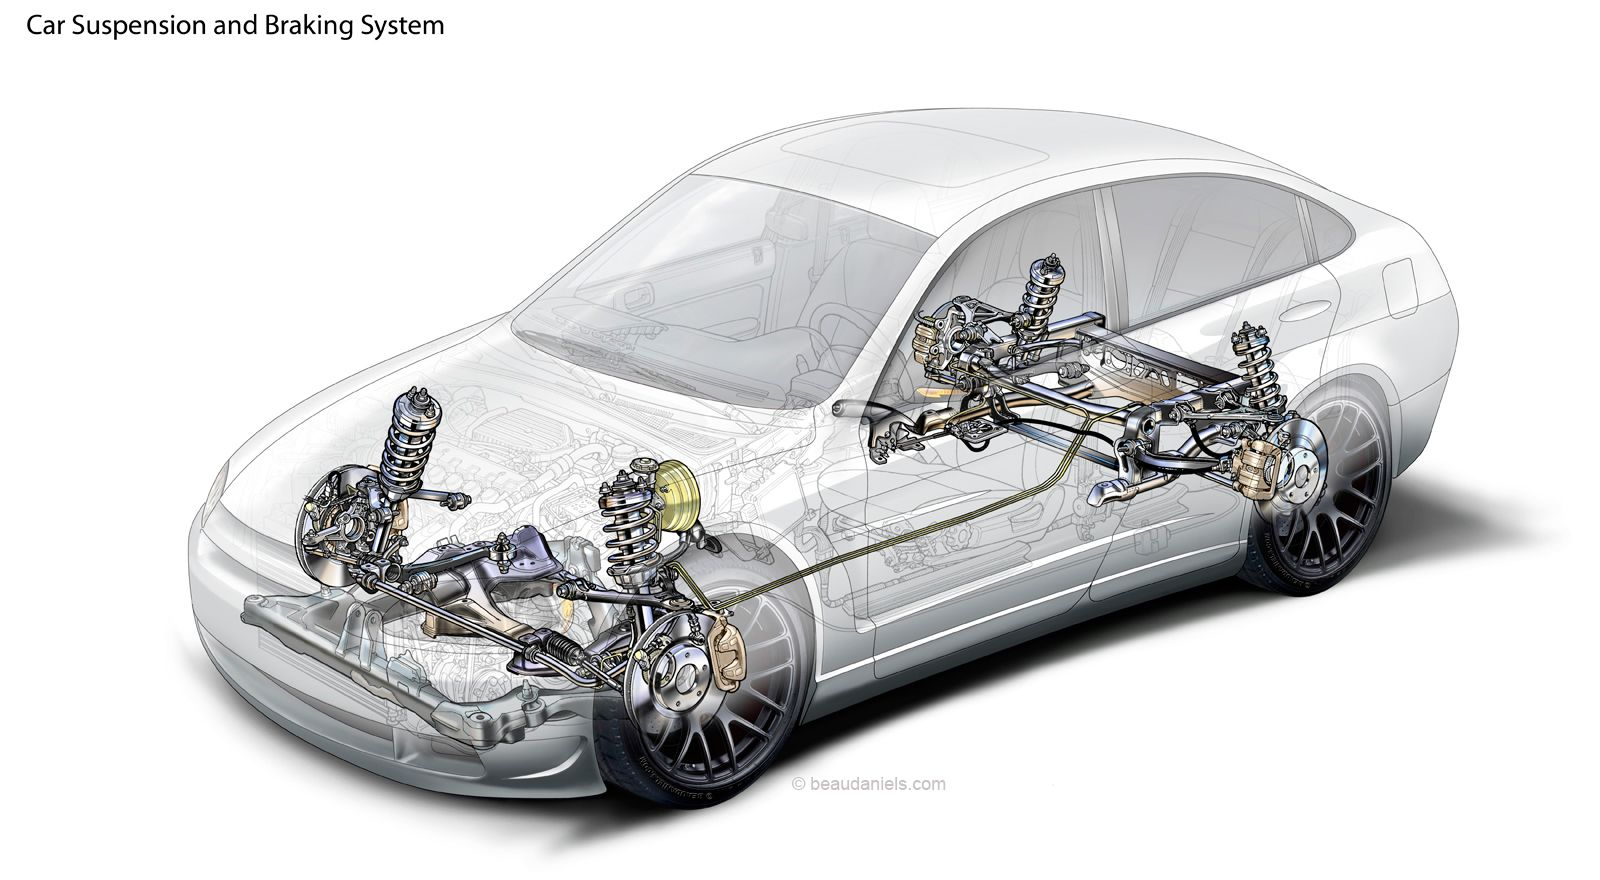 Car suspension and brake system. Cutaway technical automotive ...